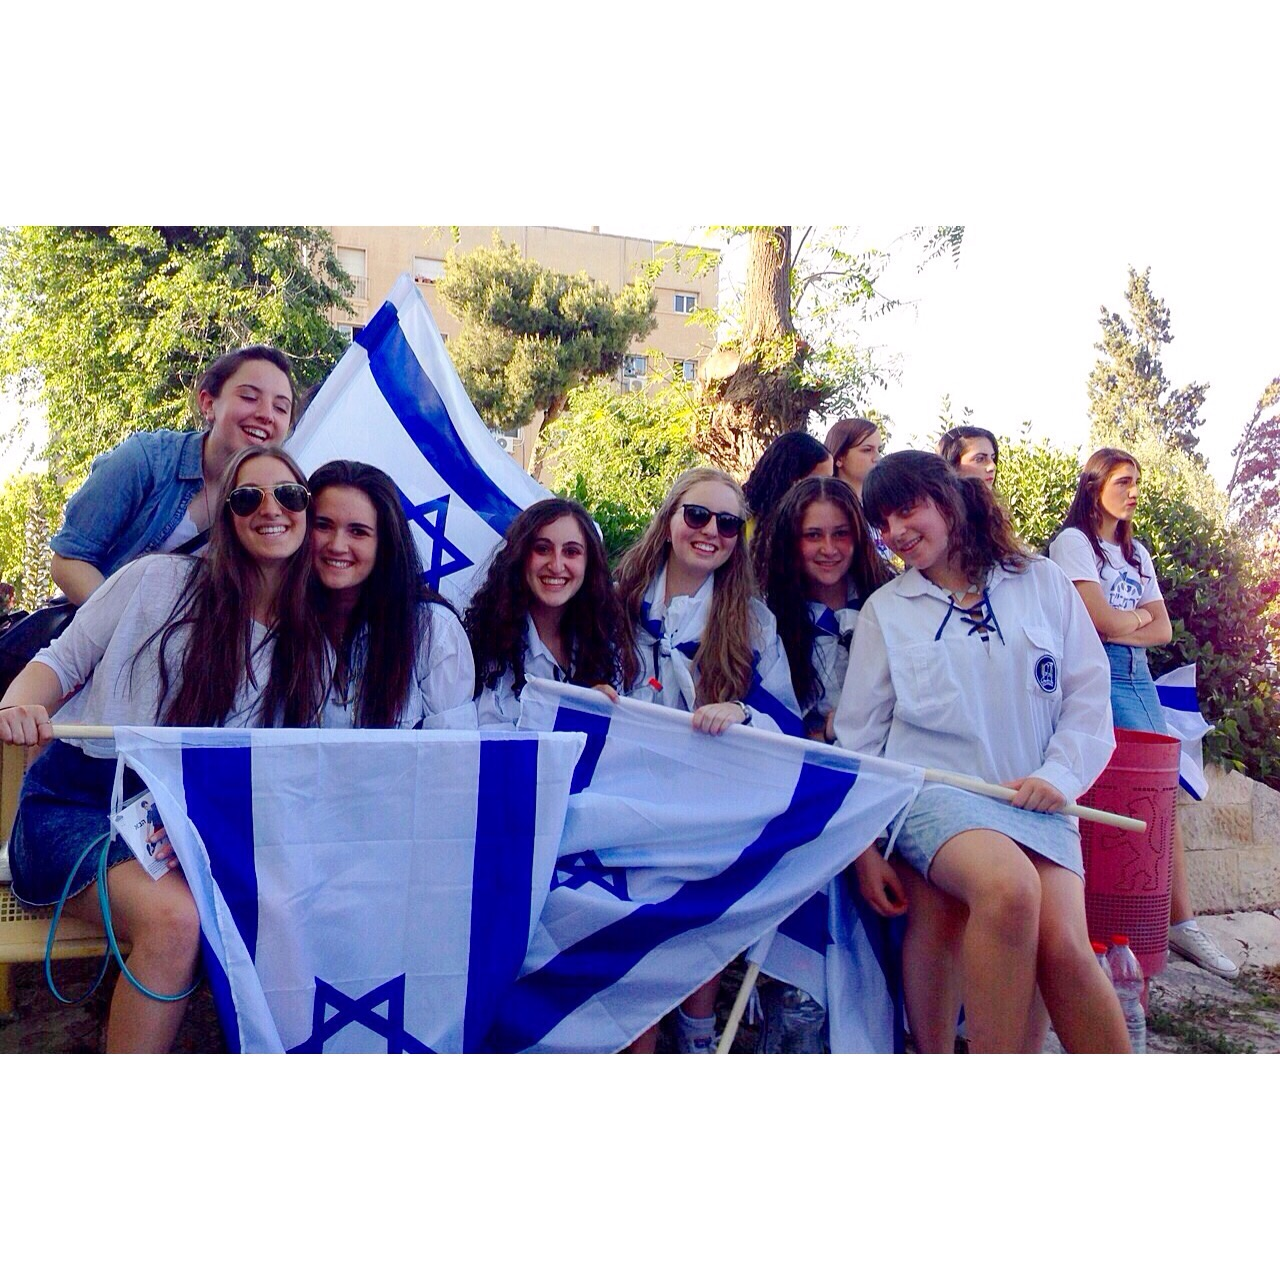 friends with Israeli flags